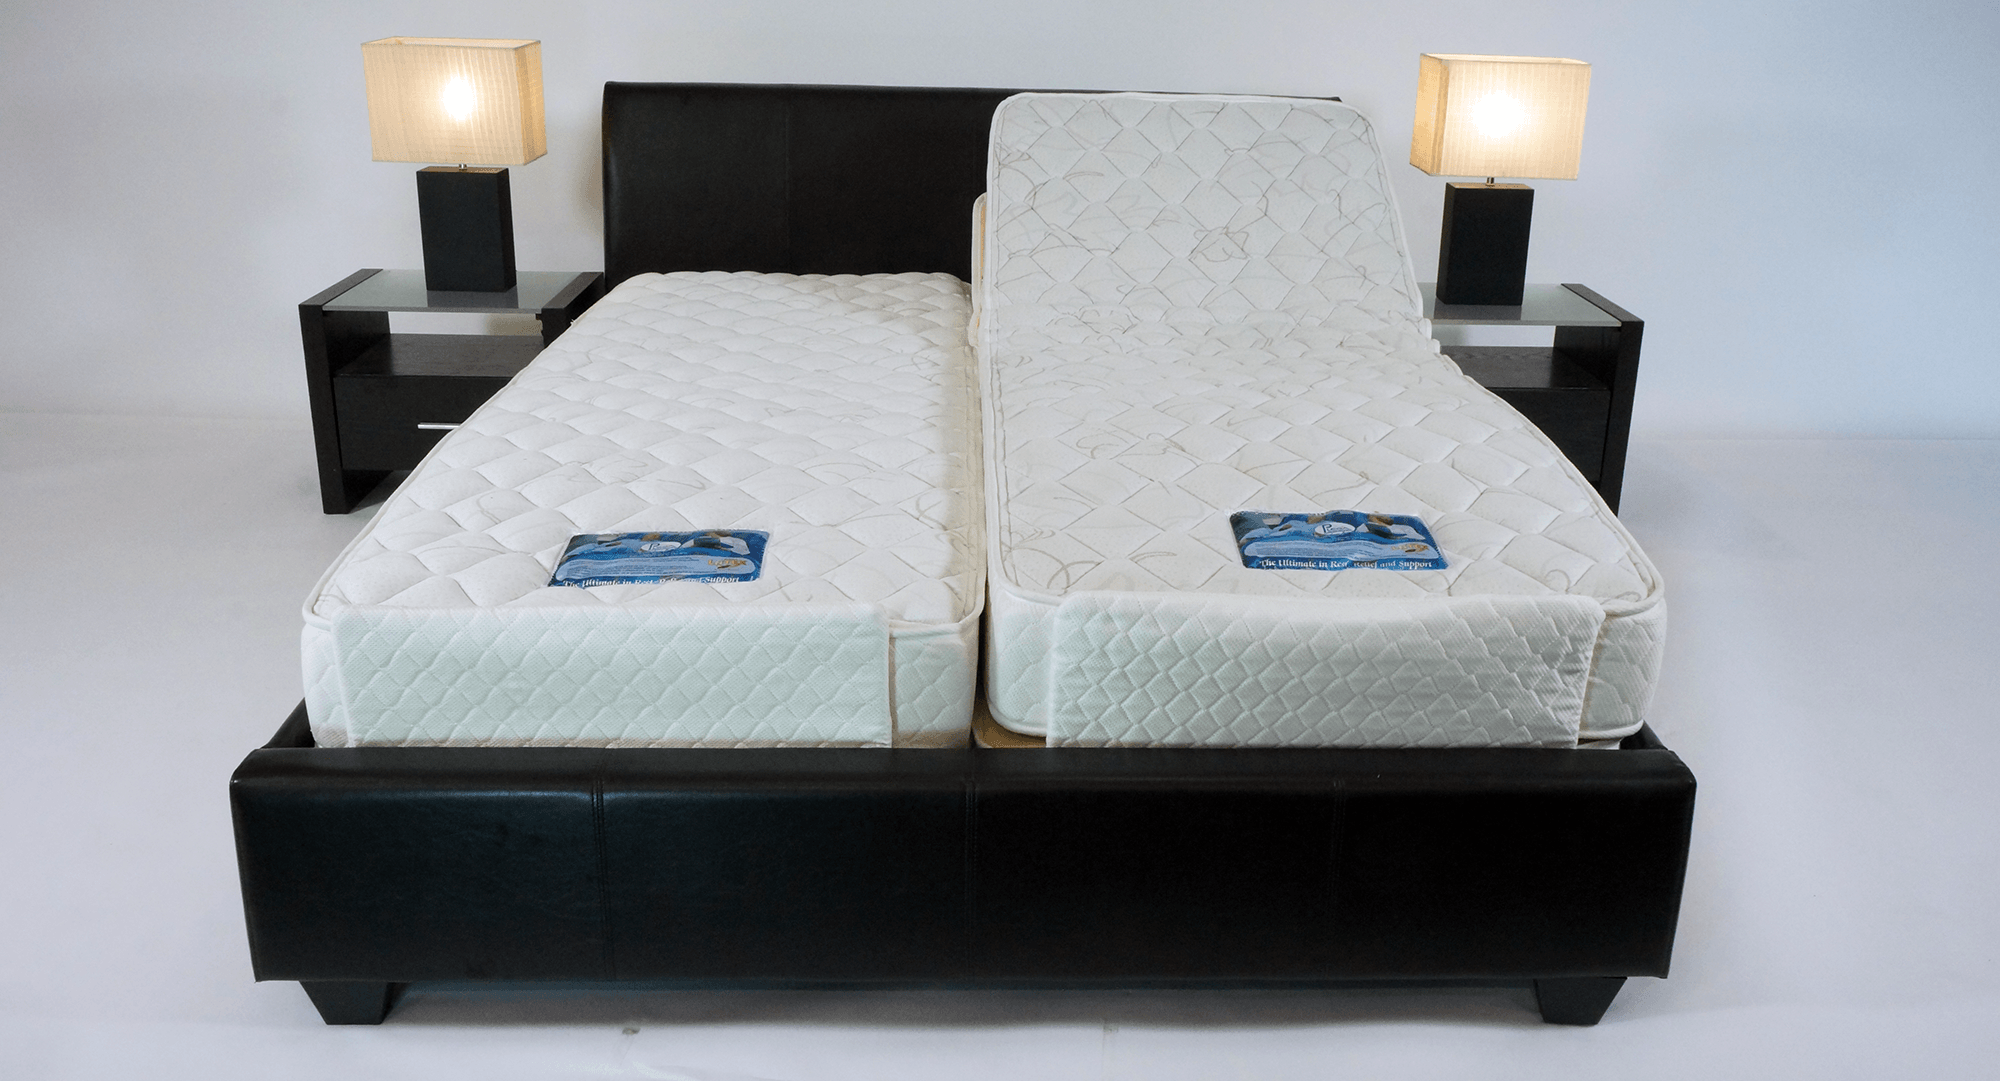 Plega queen sixe adjustable bed